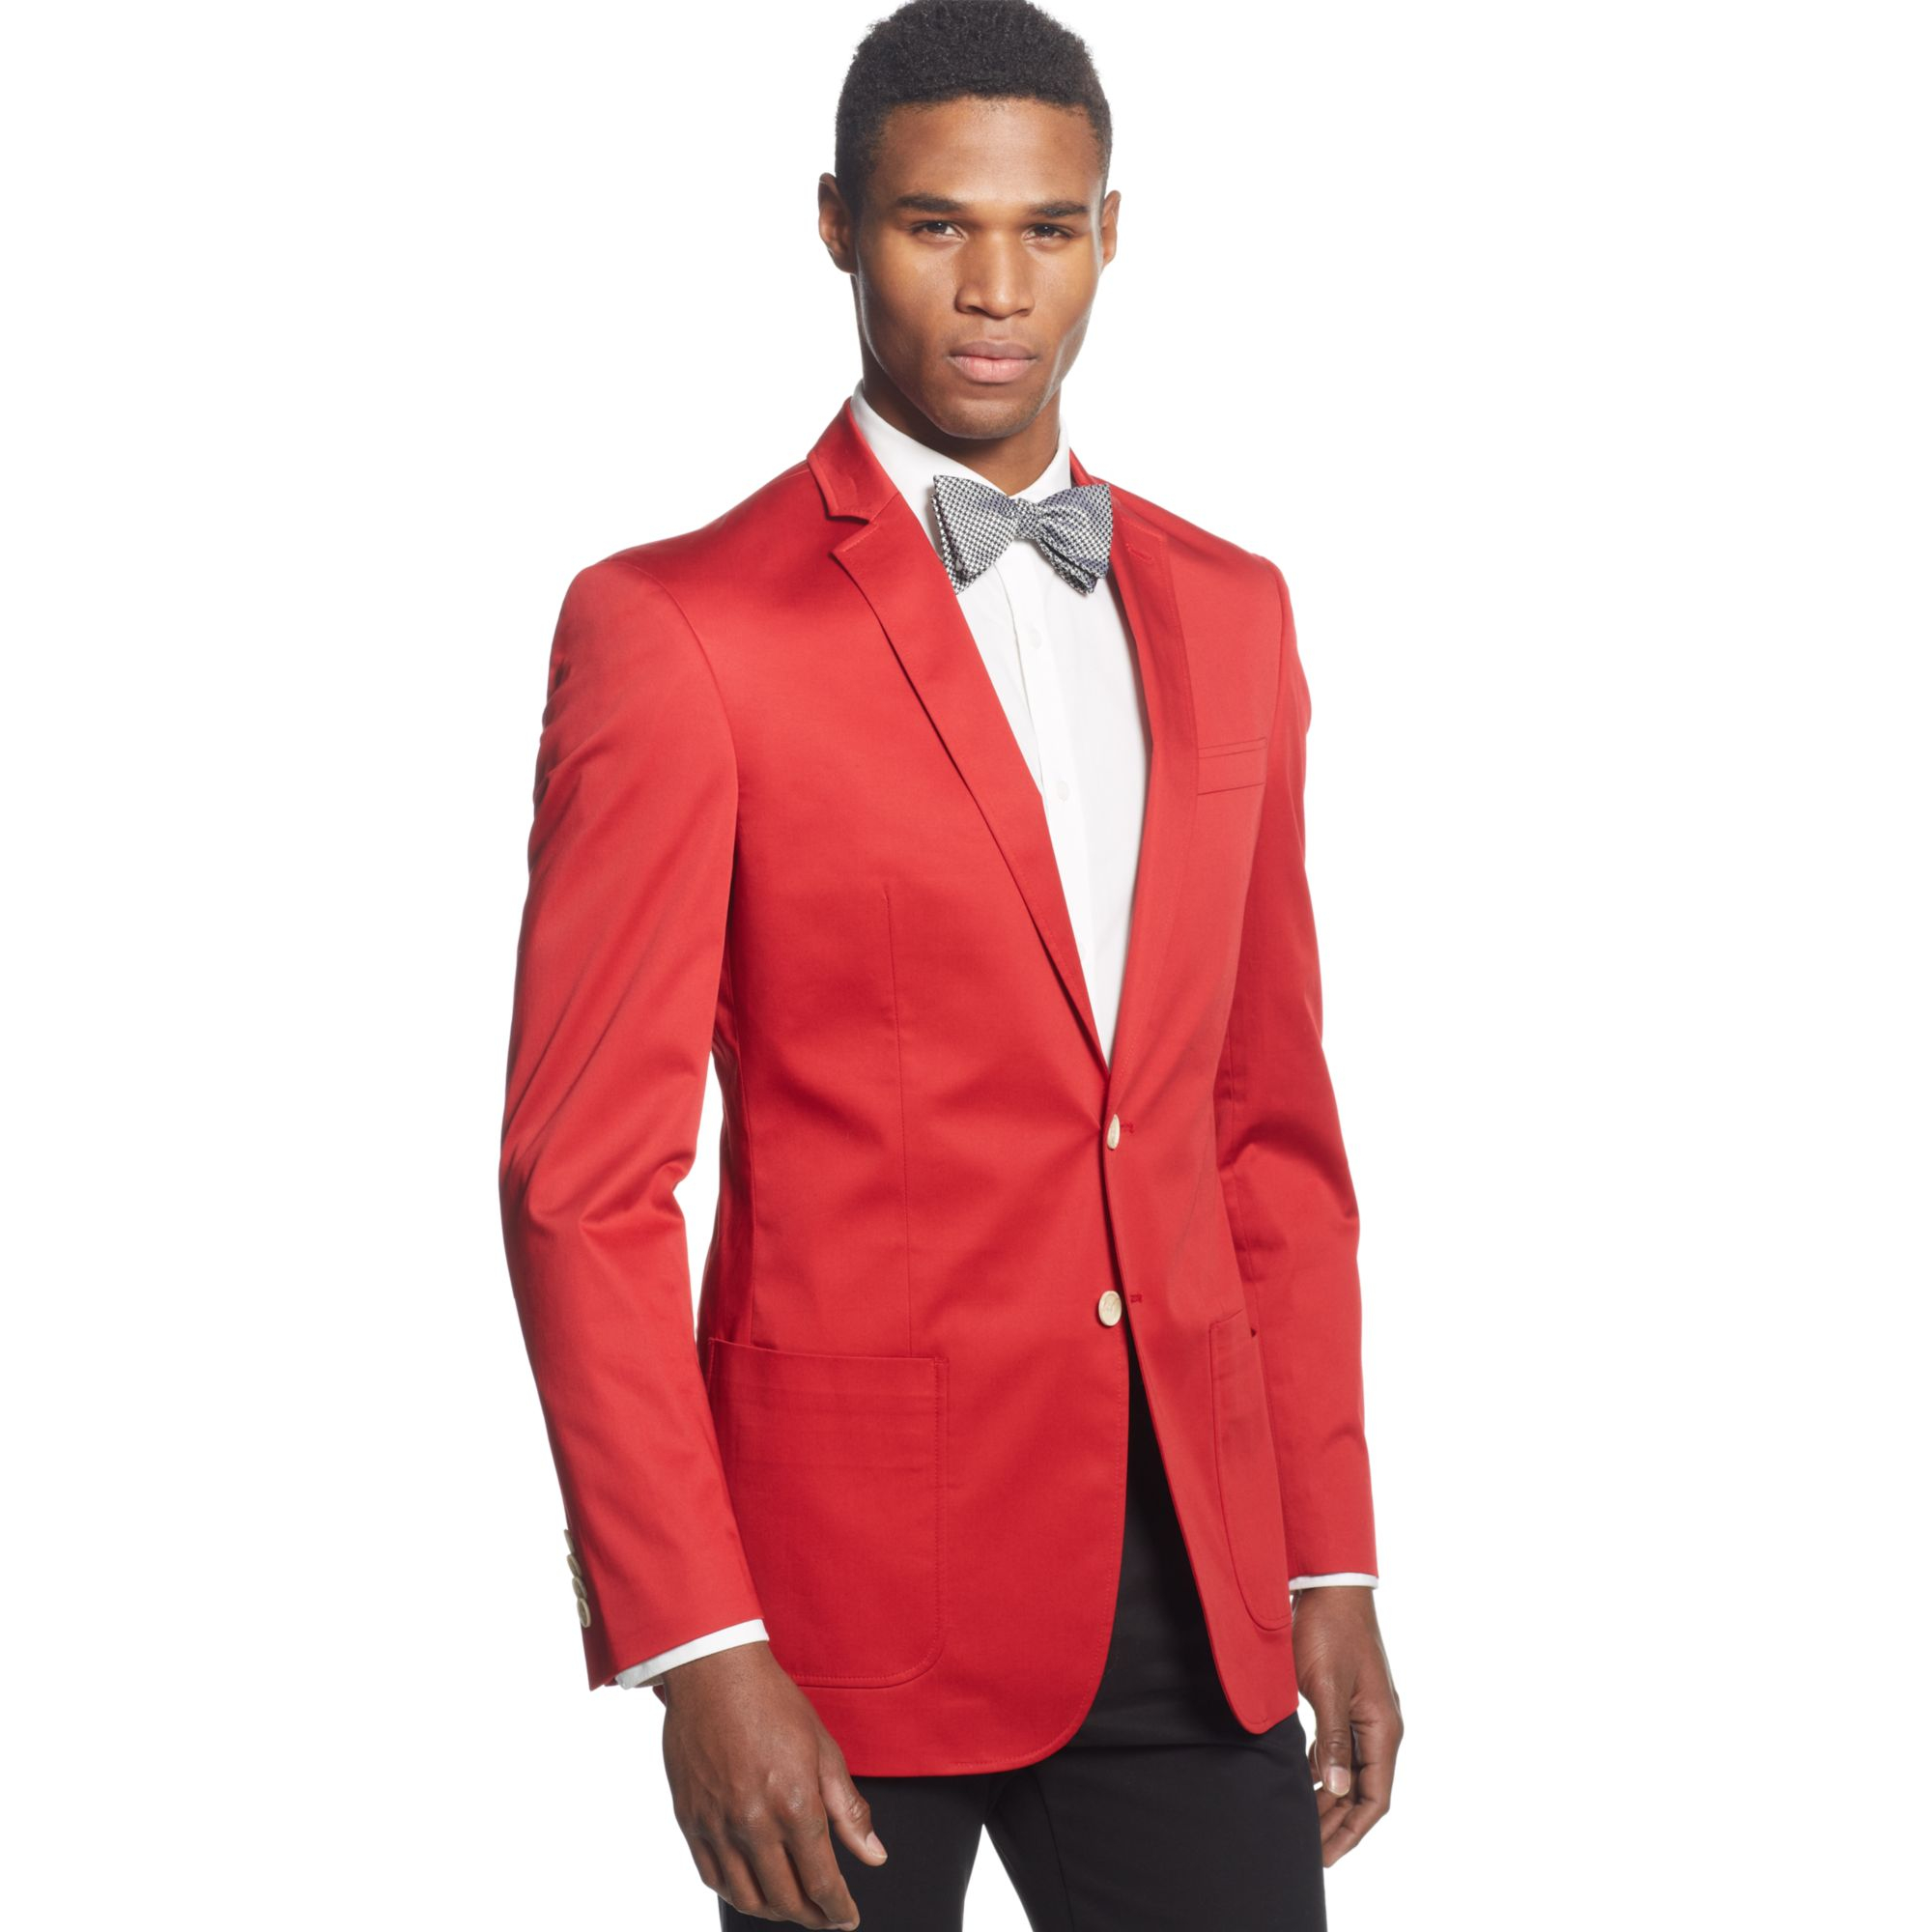 Red dress jacket mens tall clothing